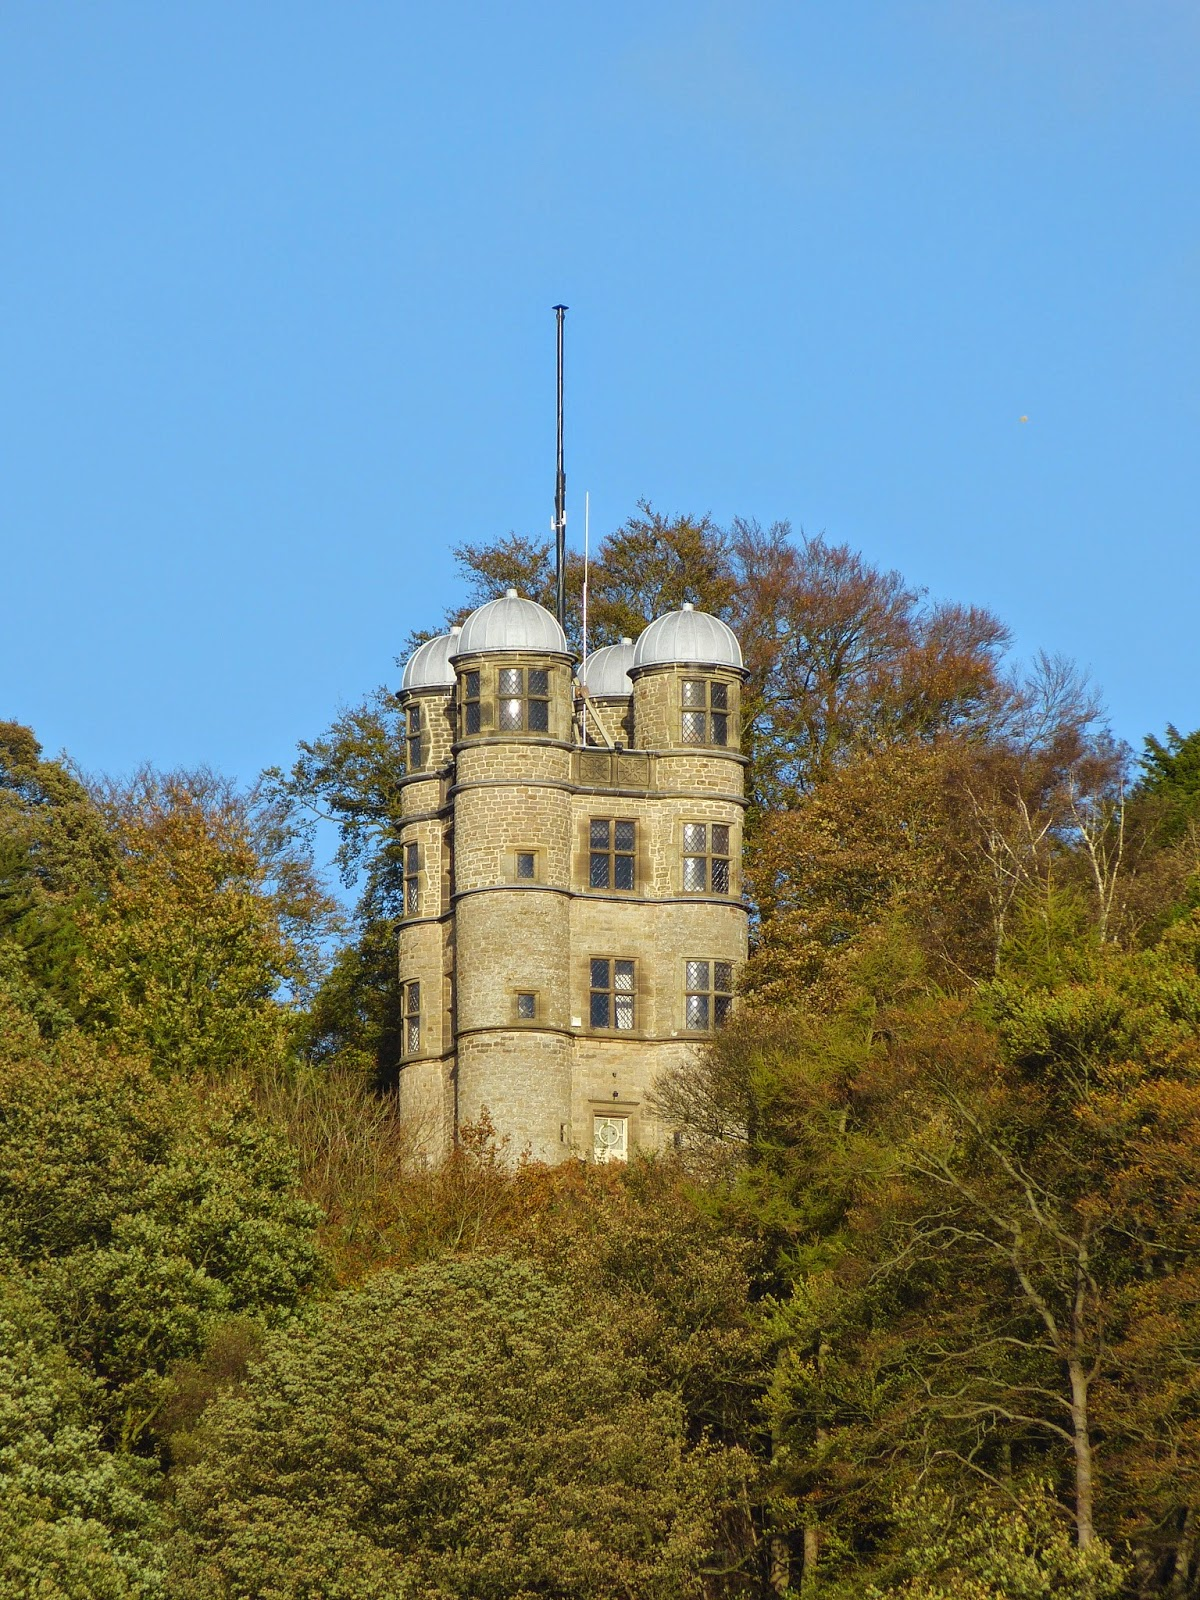 The Hunting Tower dating from the 1580s